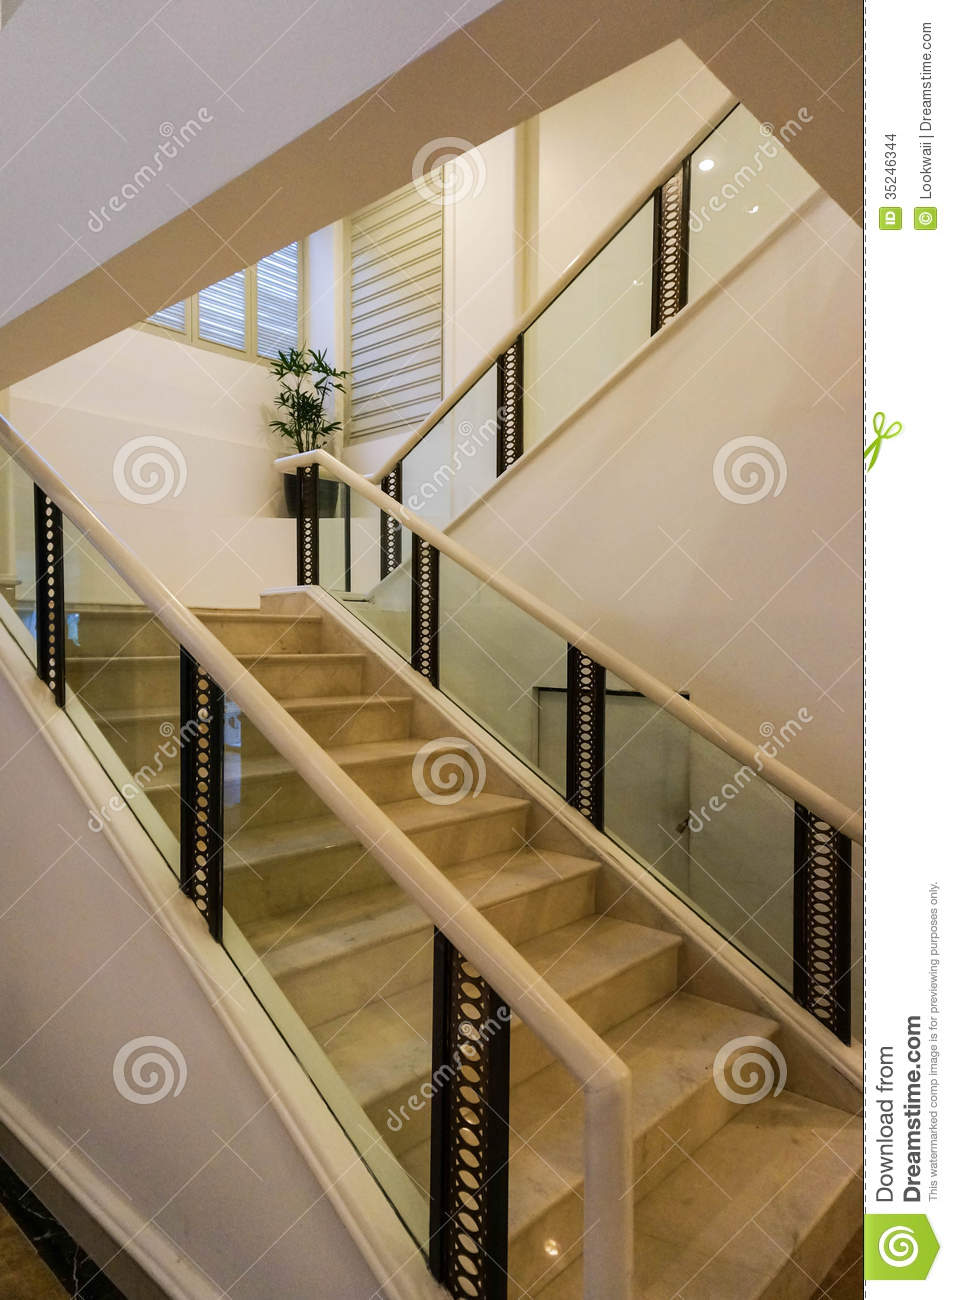 White Marble Stairs And Handrail Stock Photo - Image: 35246344